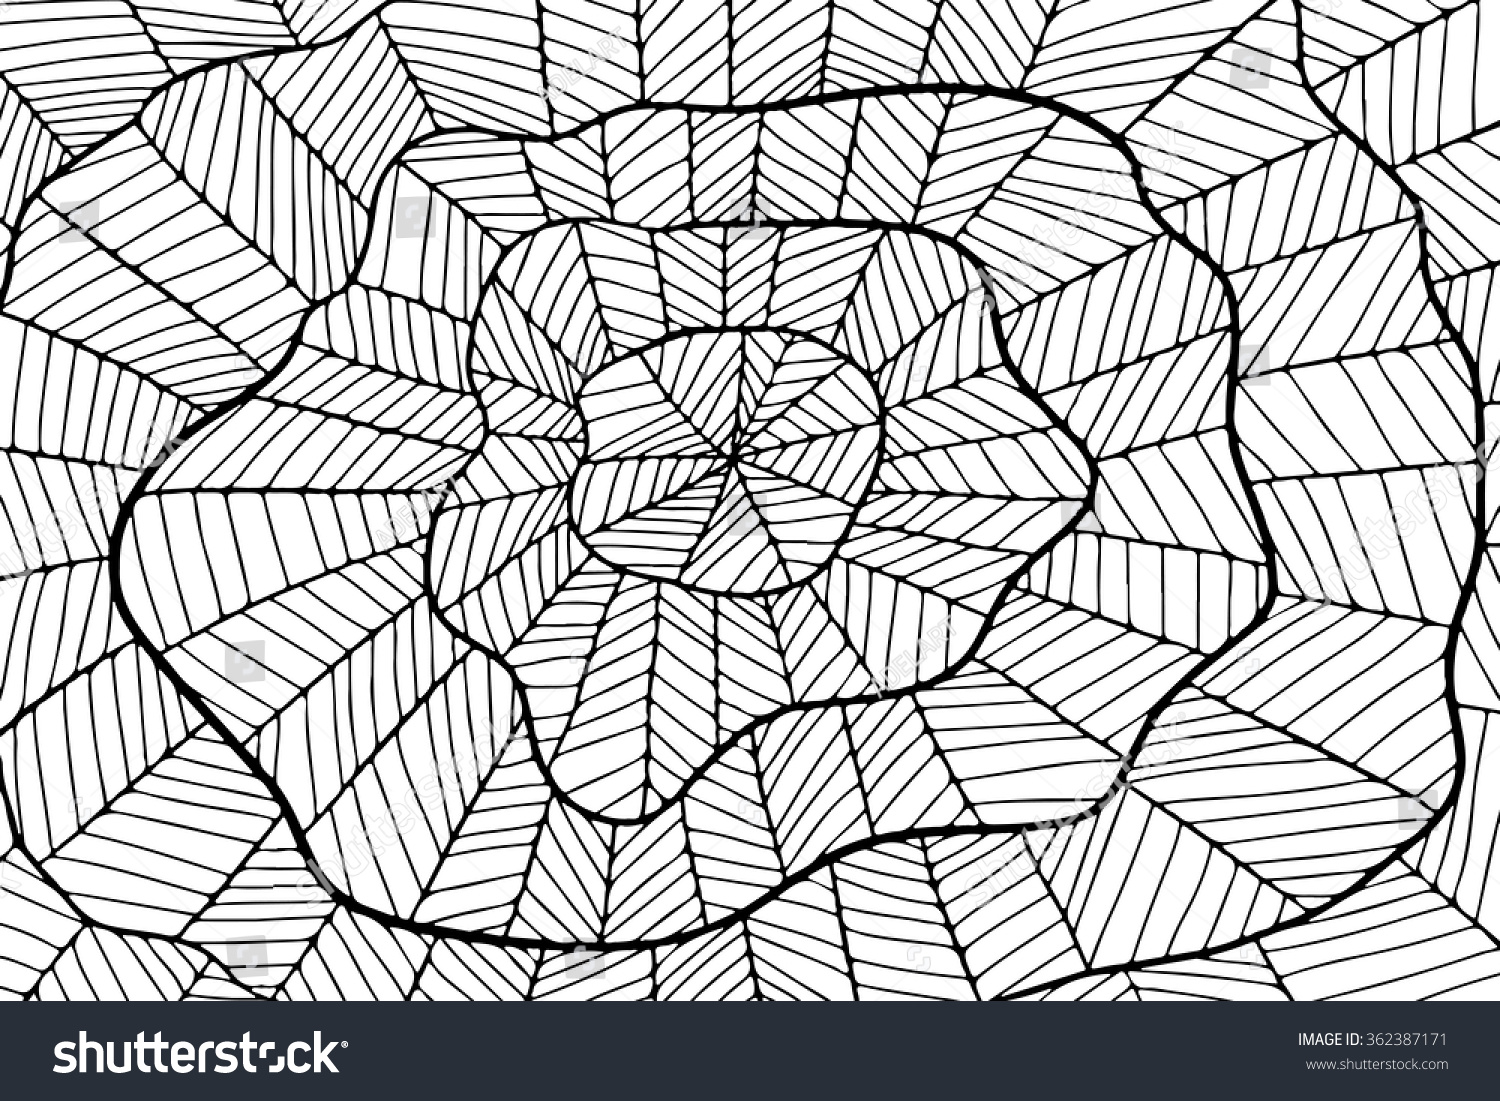 Background Zentangle Abstract Zentangle Simple Ornament Stock Vector